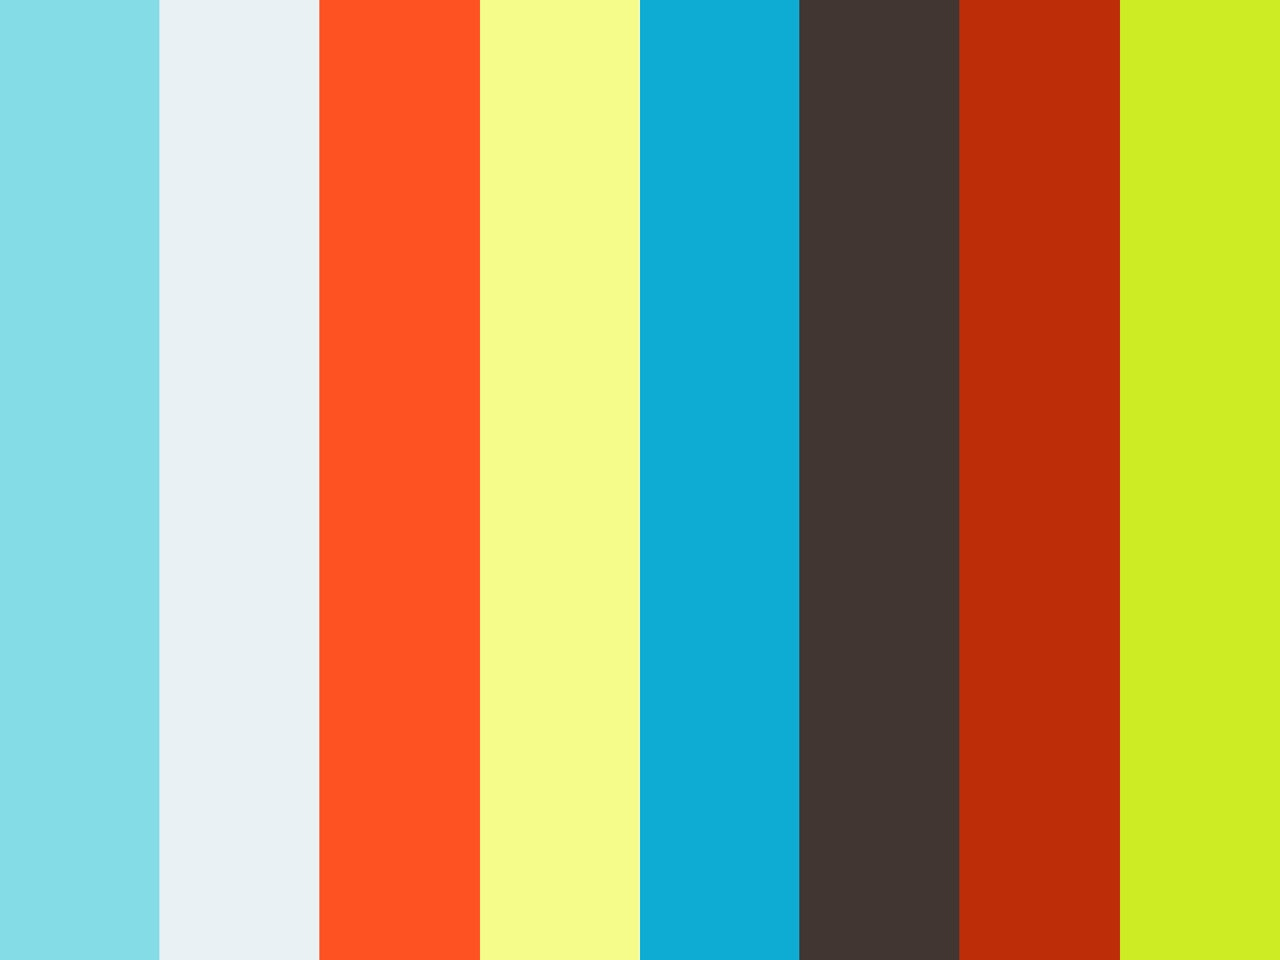 WATCH: Brian Kelly Shoves Notre Dame Assistant | Heavy.com